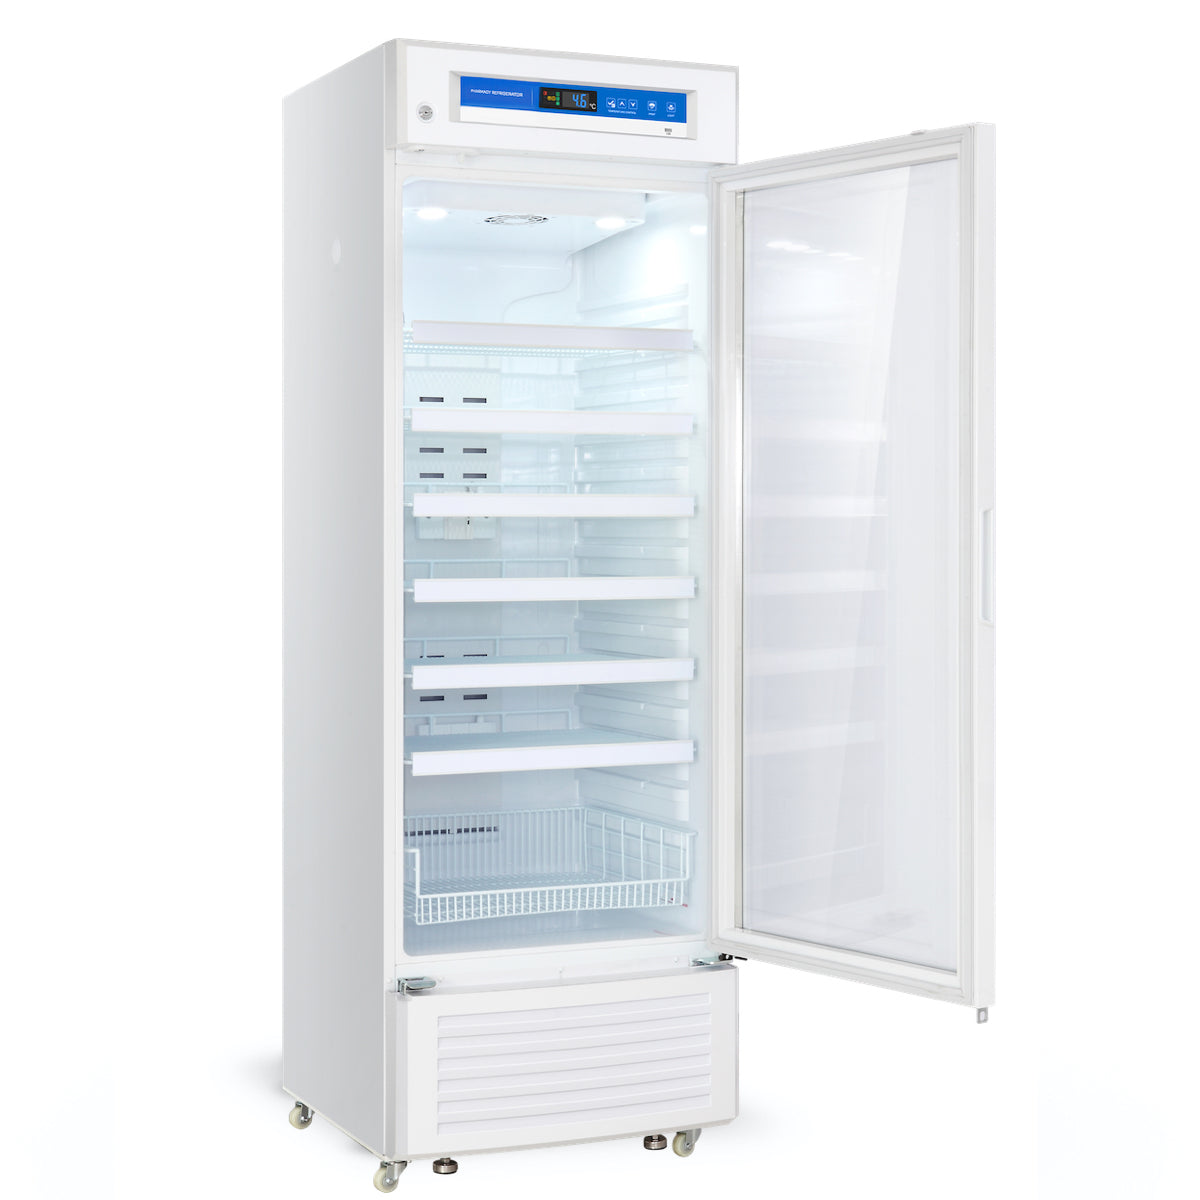 2℃ to 8℃ 395L Upright Medical Refrigerator‎ for Pharmacy and Laboratory